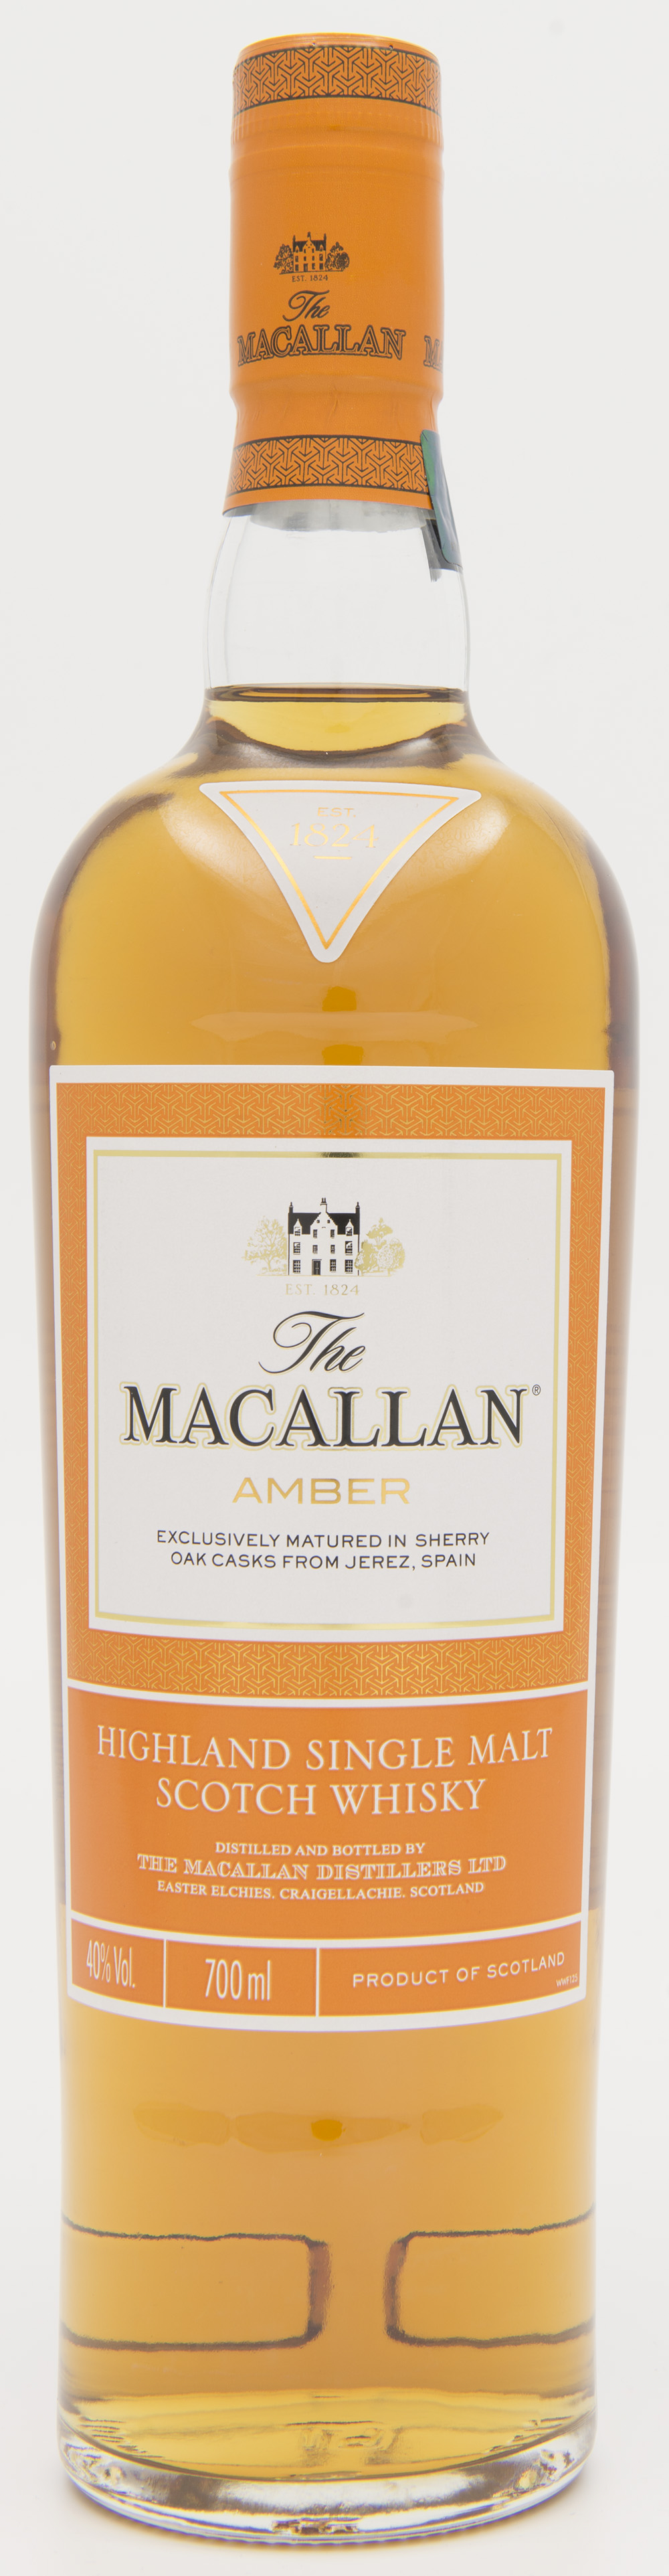 Billede: DSC_3585 The MacAllan Amber - bottle front.jpg